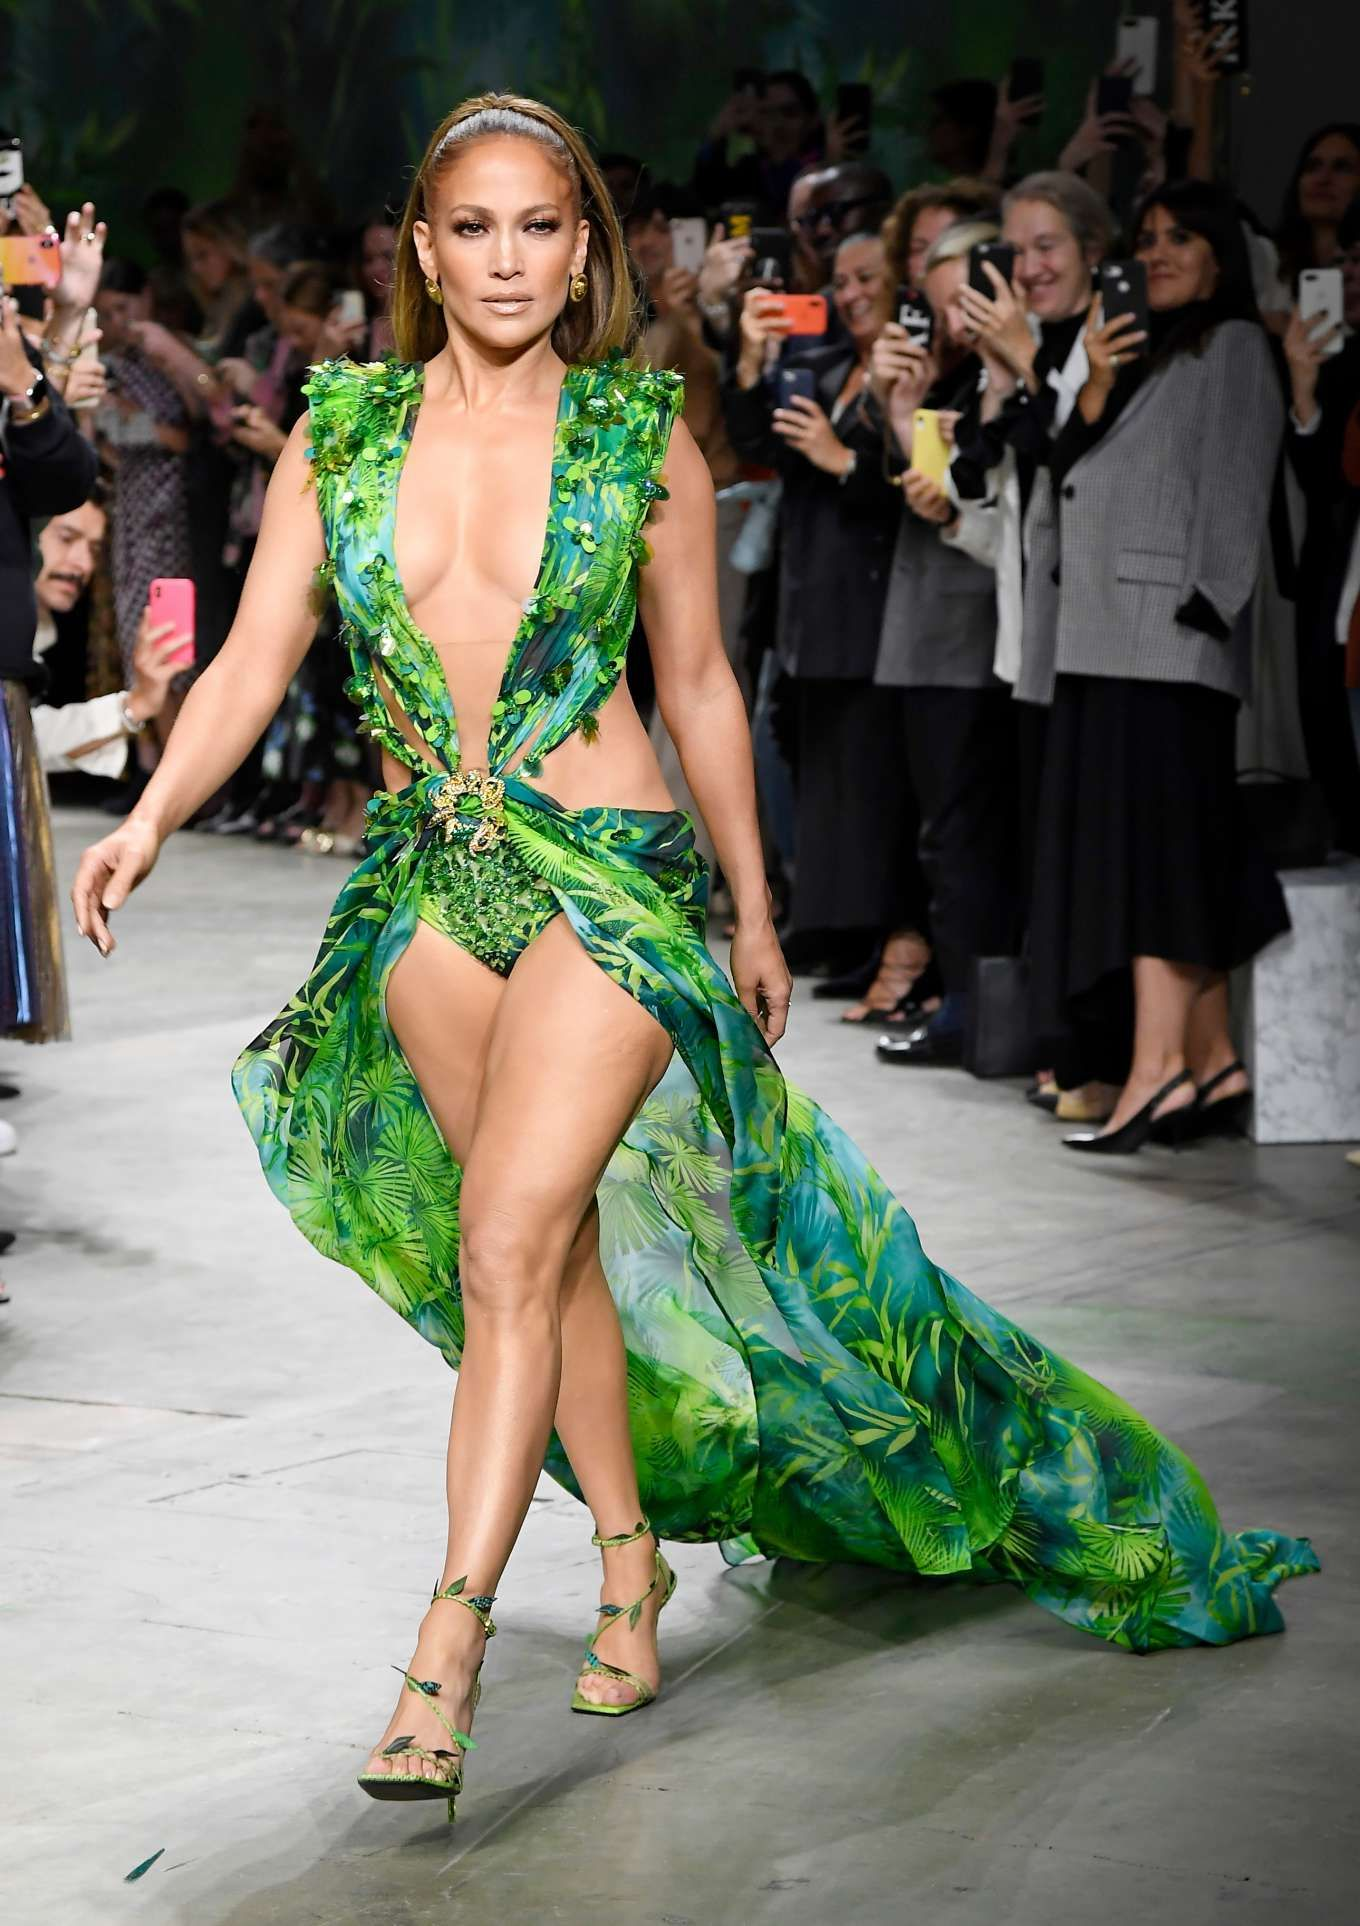 Jennifer Lopez Breaks The Internet By Recreating Her Iconic Versace Dress Moment At Milan Fashion Week Mark Jennifer Lopez Green Dress Fashion Jennifer Lopez [ 1926 x 1360 Pixel ]